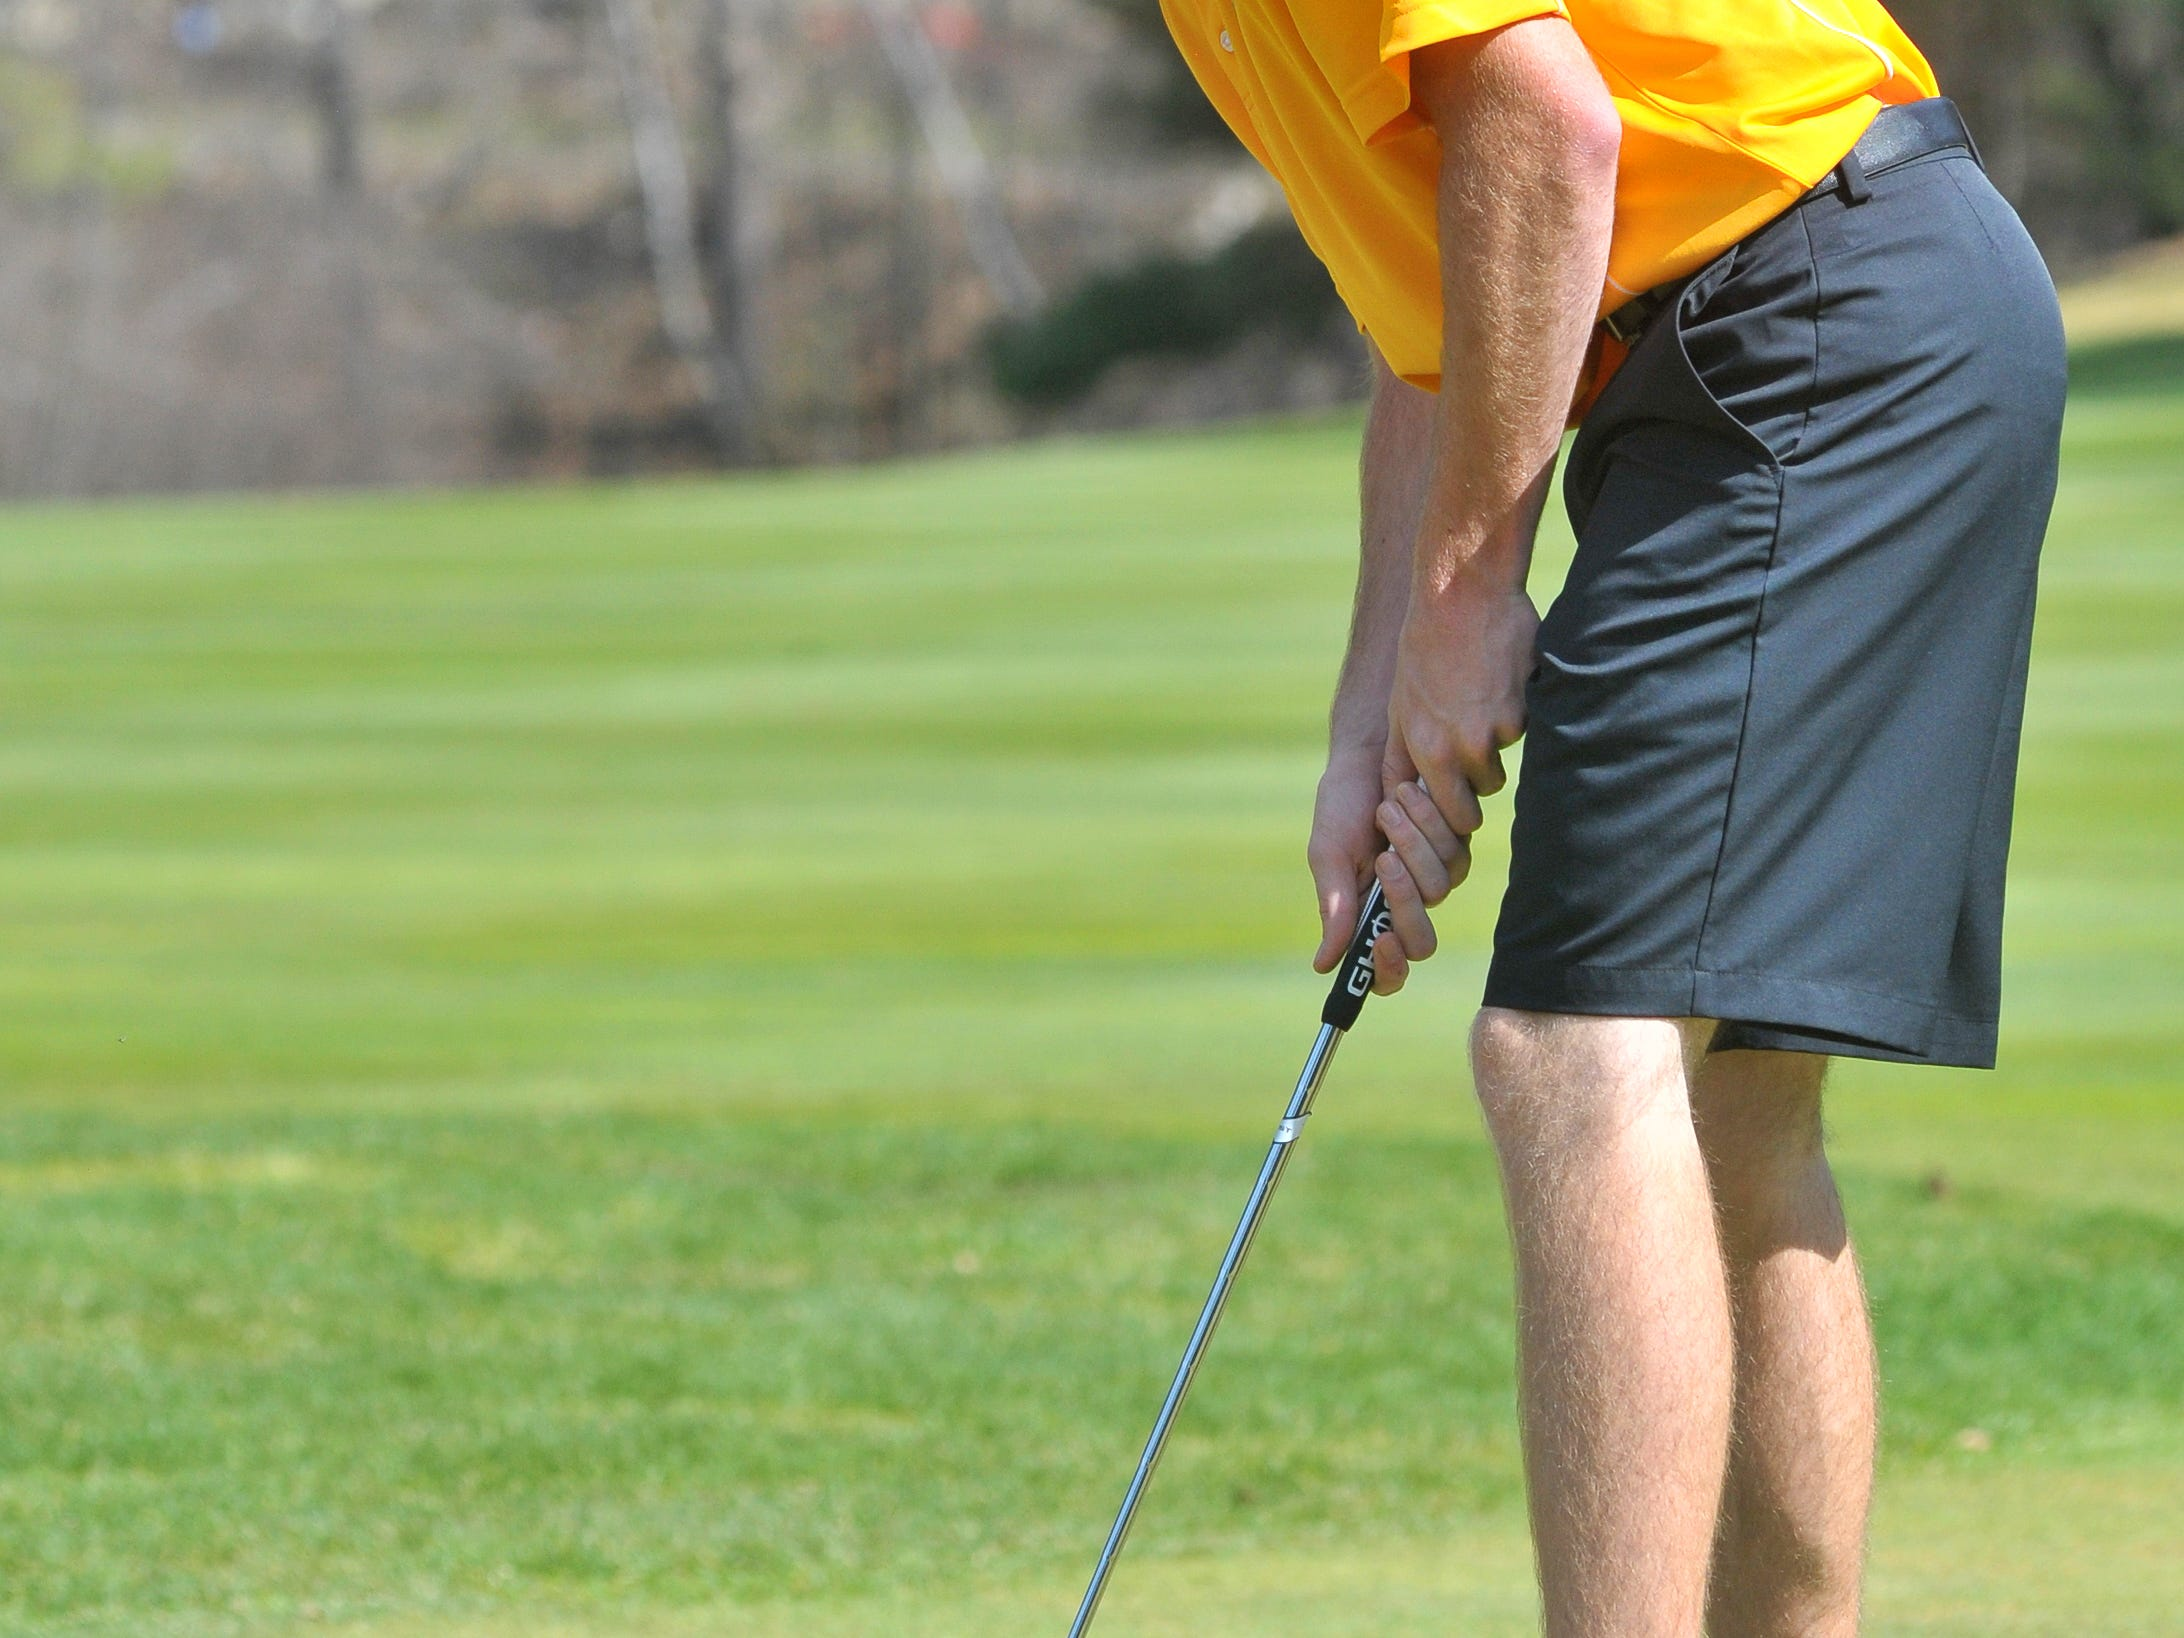 D.C. Everest's Derek Tomczik watches his put during Tuesday's City Meet at Wausau Country Club in Schofield.